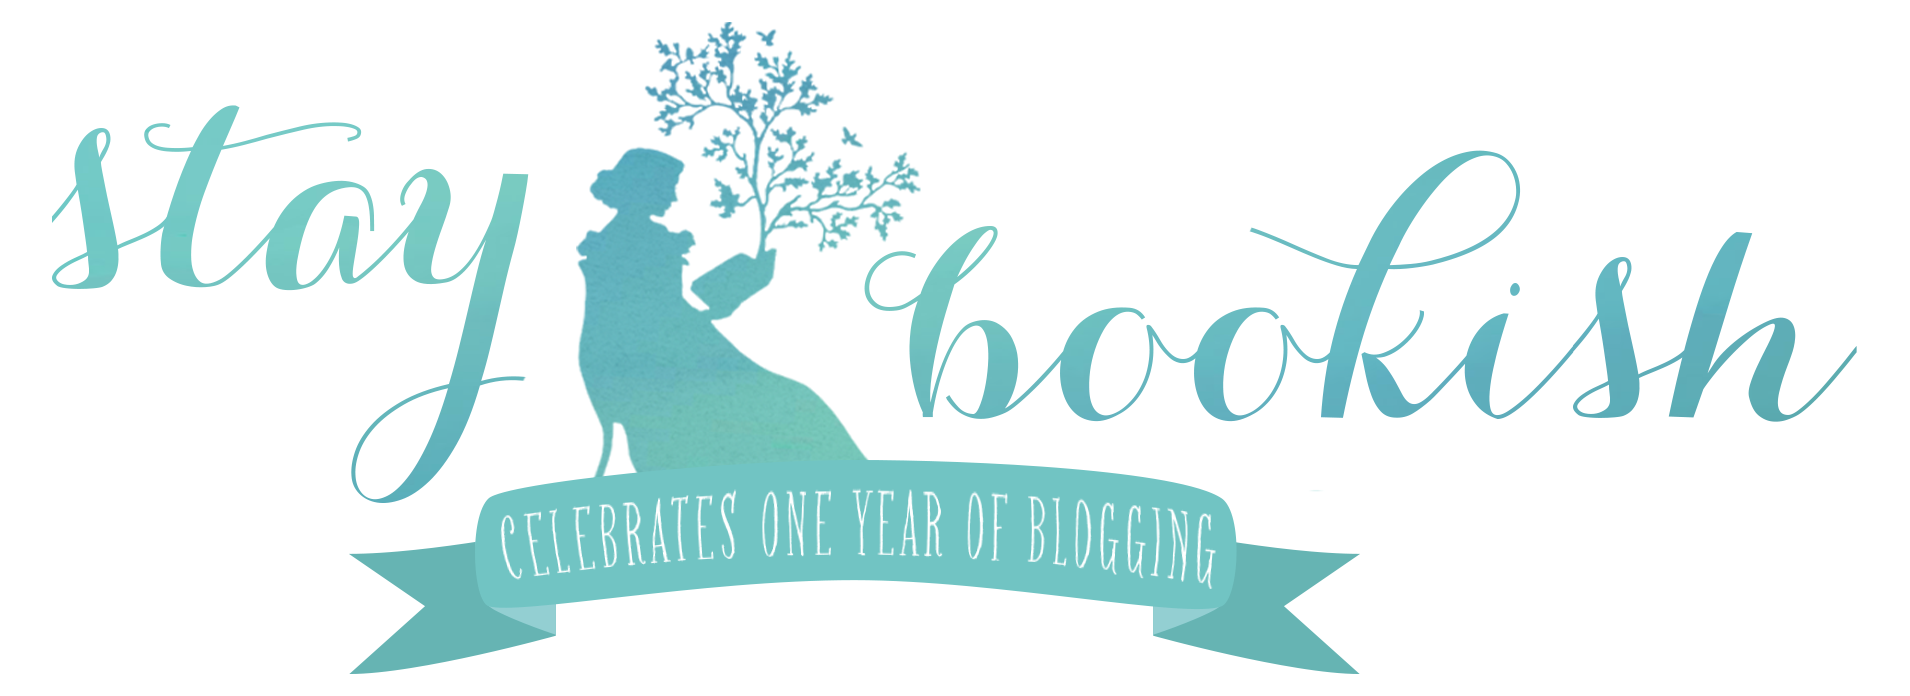 stay bookish blogoversaryyyyy